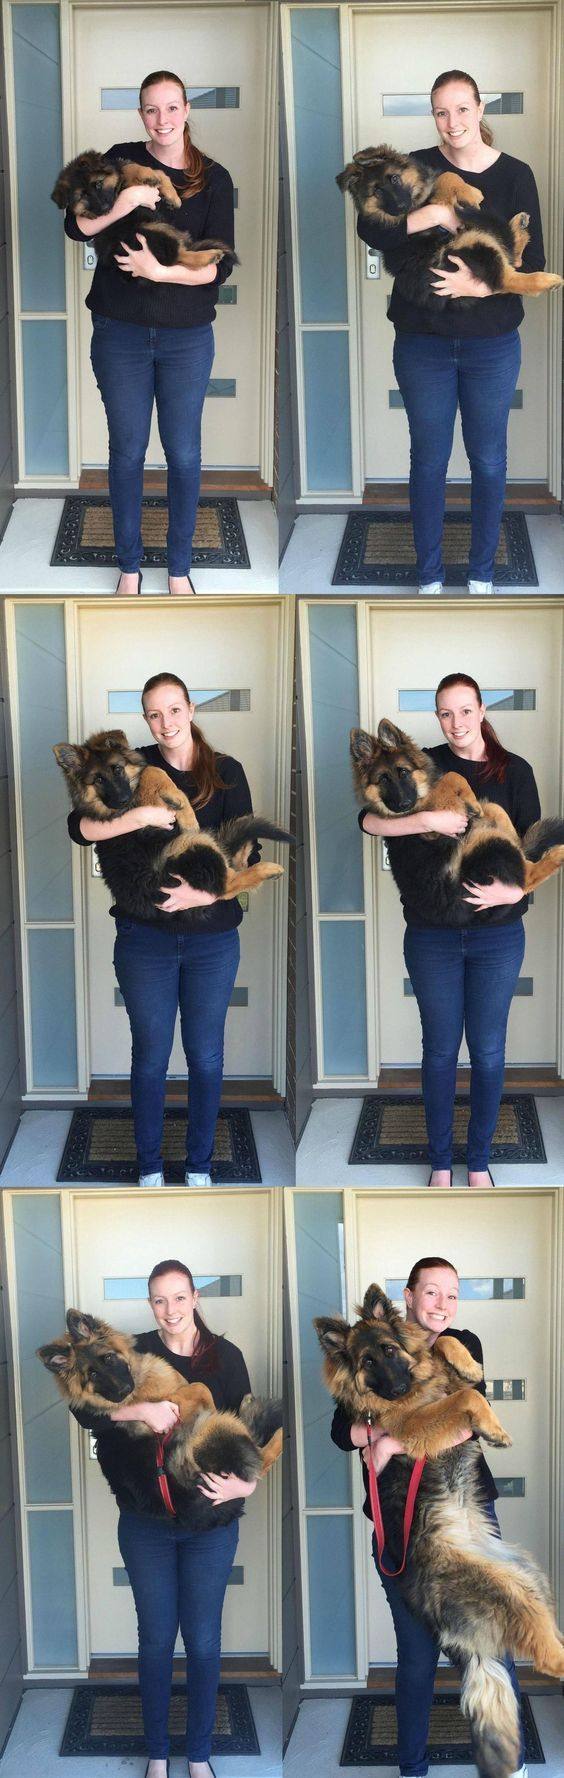 Look at this incredible series of photos from proud pet owner Ashley Lewis, showing what time and love does to a dog. In only 6 months, her lil' 8-week-old German shepherd blossomed from a wee puppy who could easily fit her arms to a hulking big puppy who probably has trouble fitting on the couch.